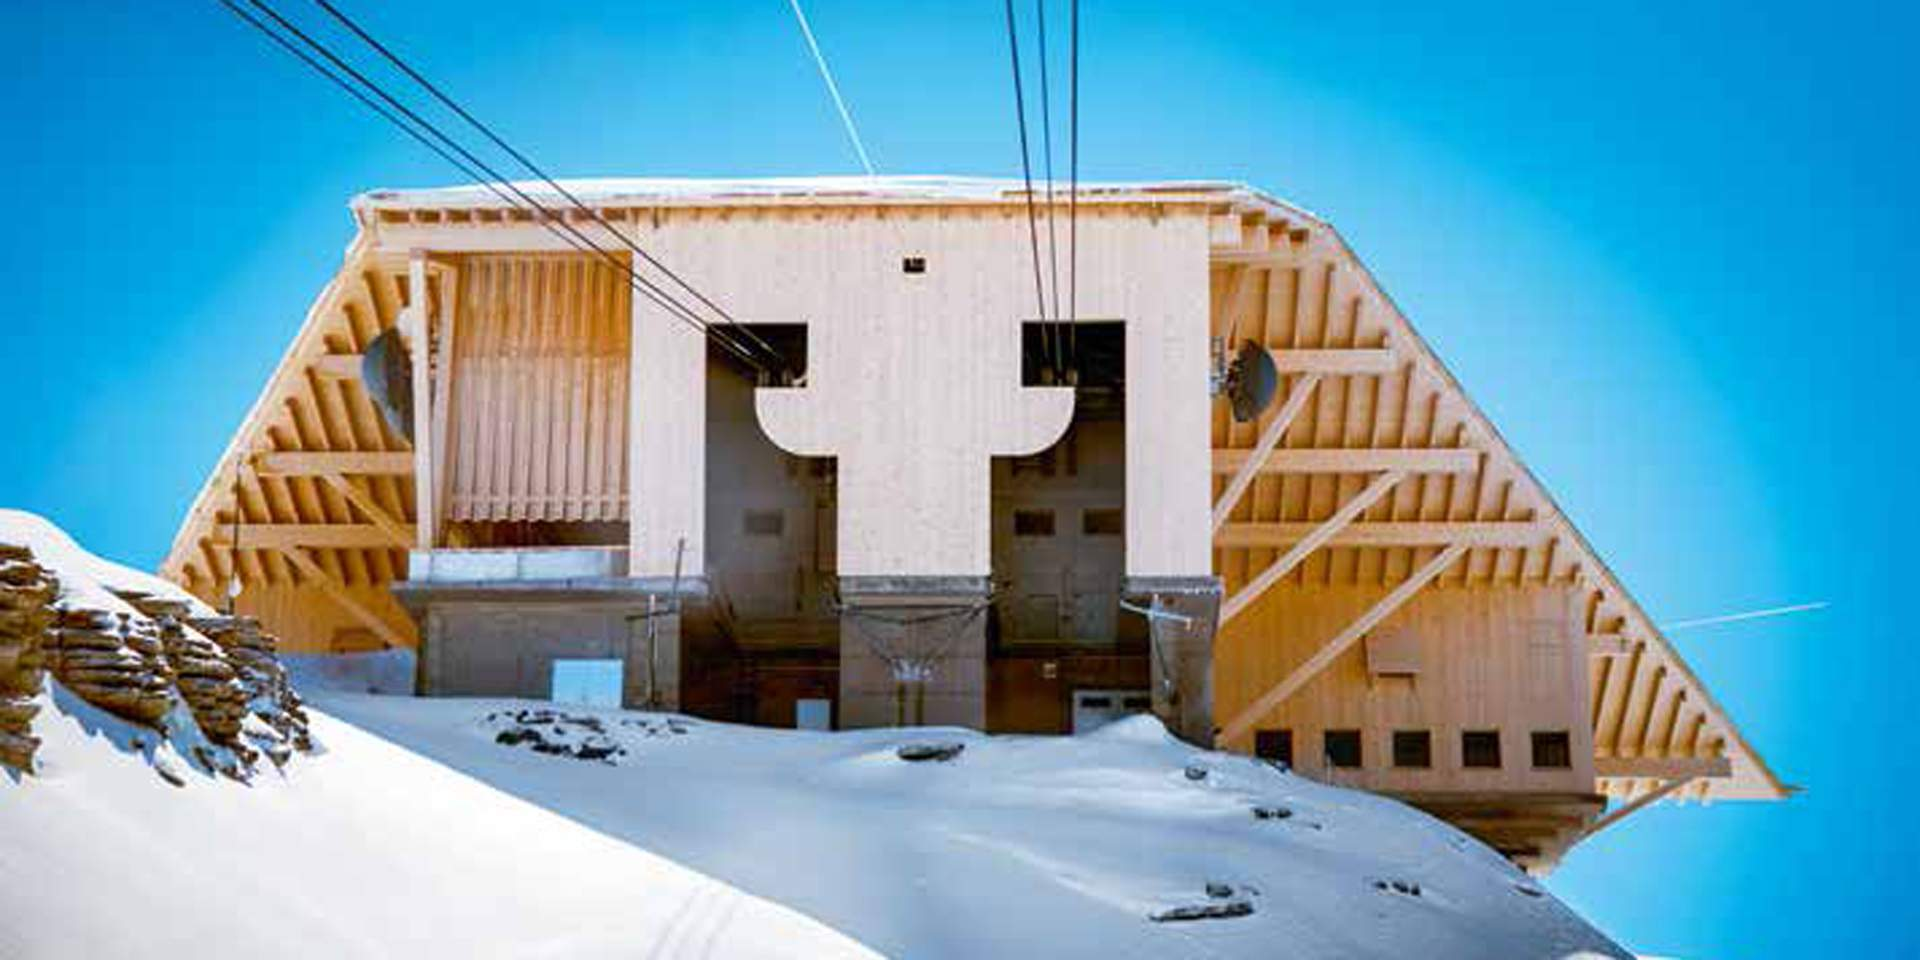 Suspended barn: The cable car docks directly at the new summit restaurant designed by Herzog & de Meuron at the top of the Chäserrugg mountain.